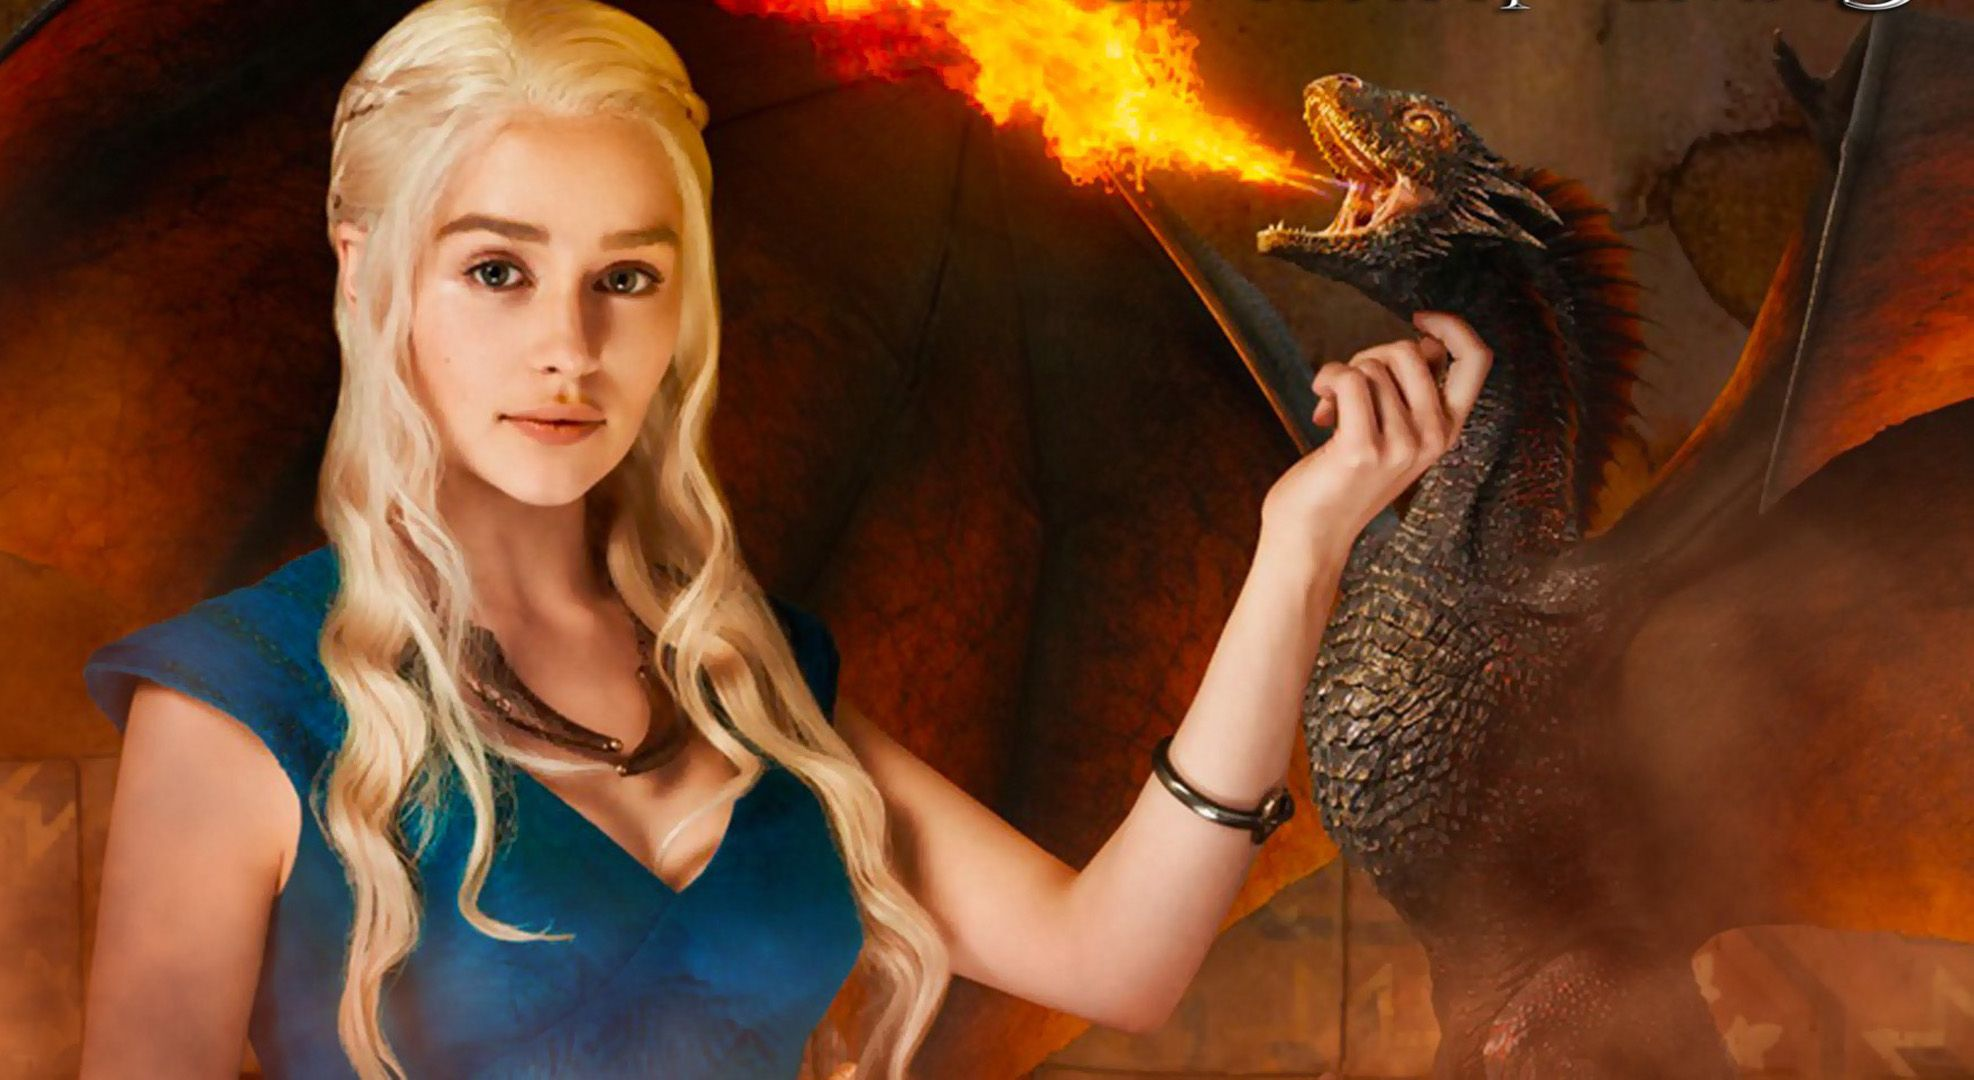 Emilia Clarke Game Of Thrones Wallpaper: Emilia Clarke Wallpaper Game Of Thrones : HD Wallpapers